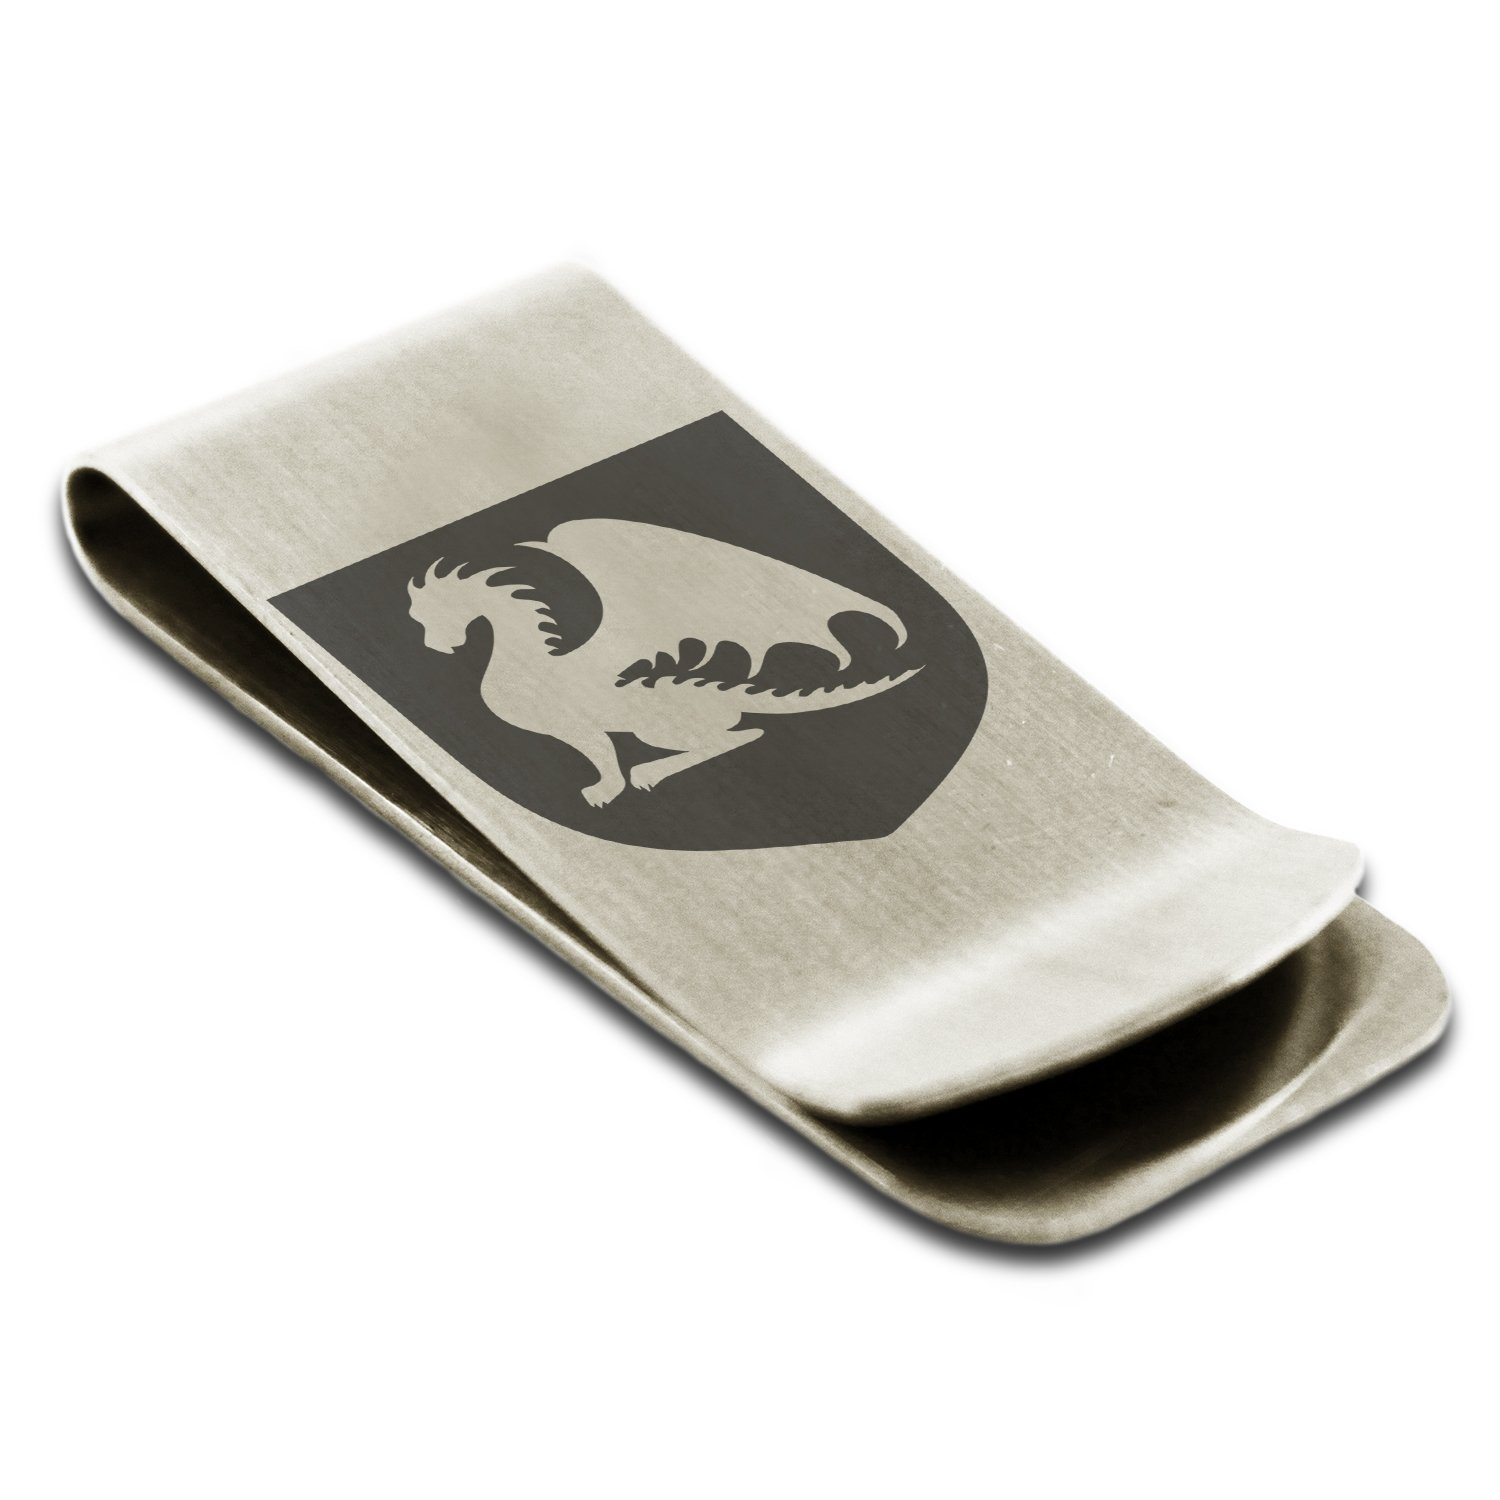 Stainless Steel Dragon Guardian Coat of Arms Shield Symbol Engraved Money Clip Credit Card Holder